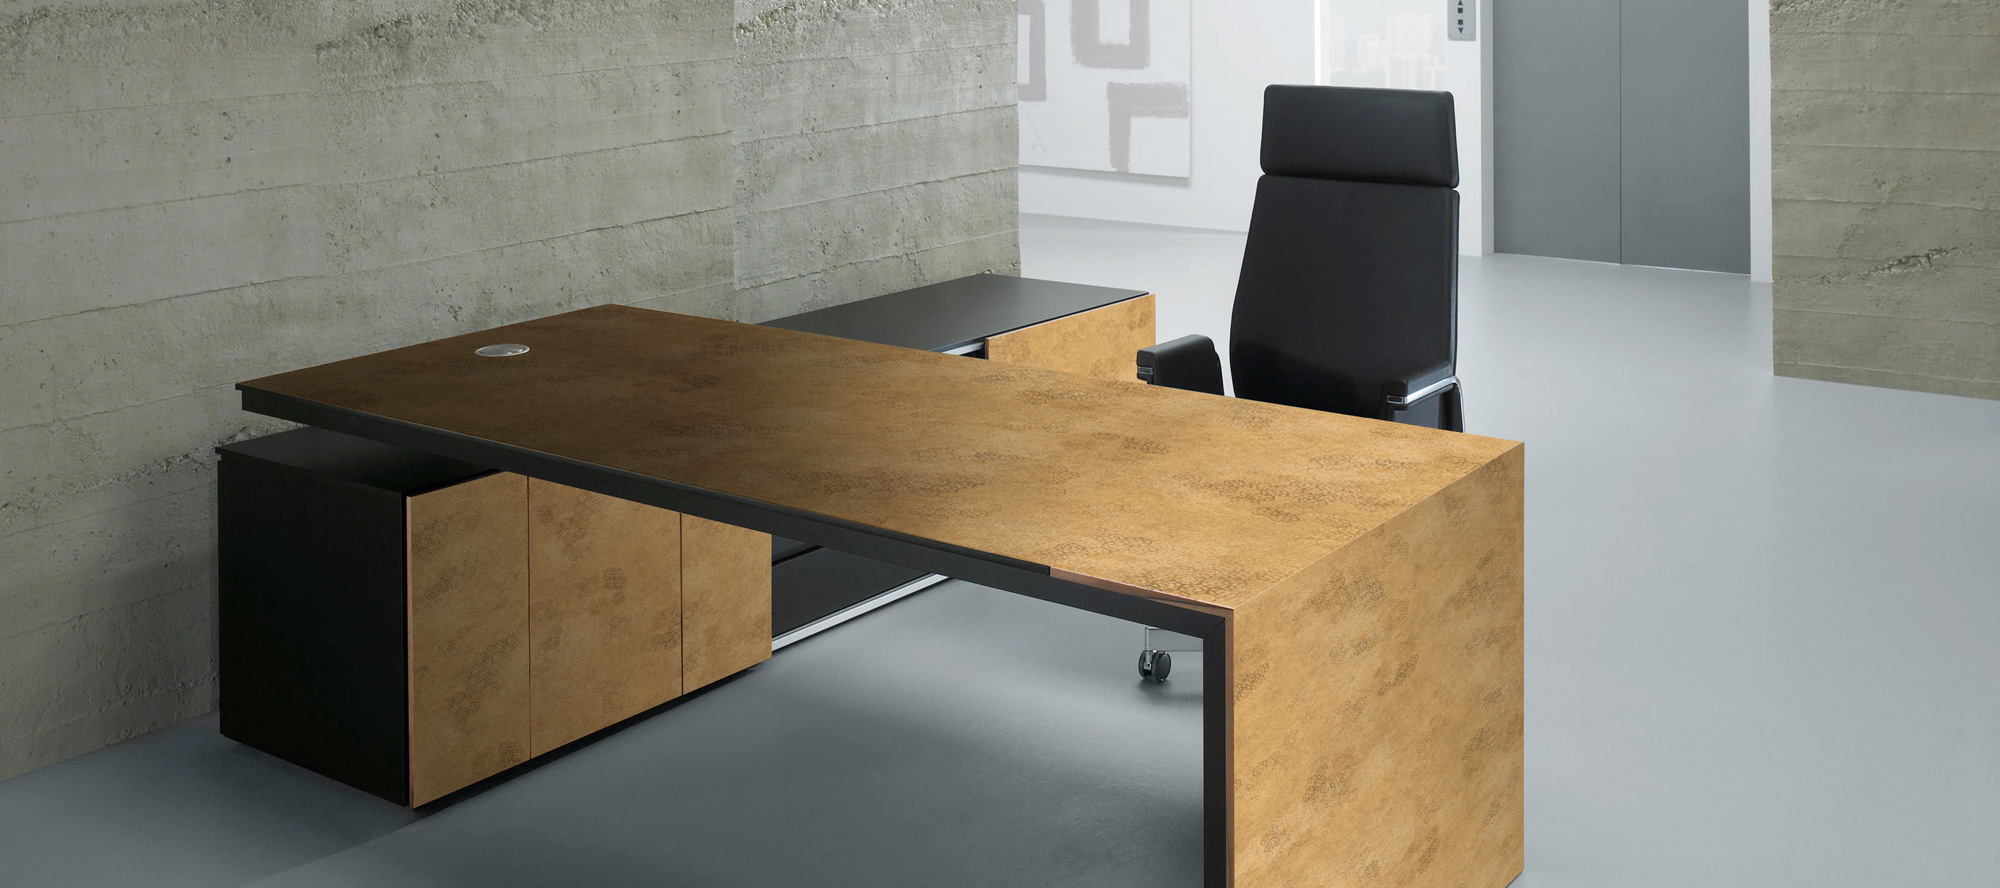 D'infinity, Materialistik Connexion Laminates For Corporate Office-Sundek International